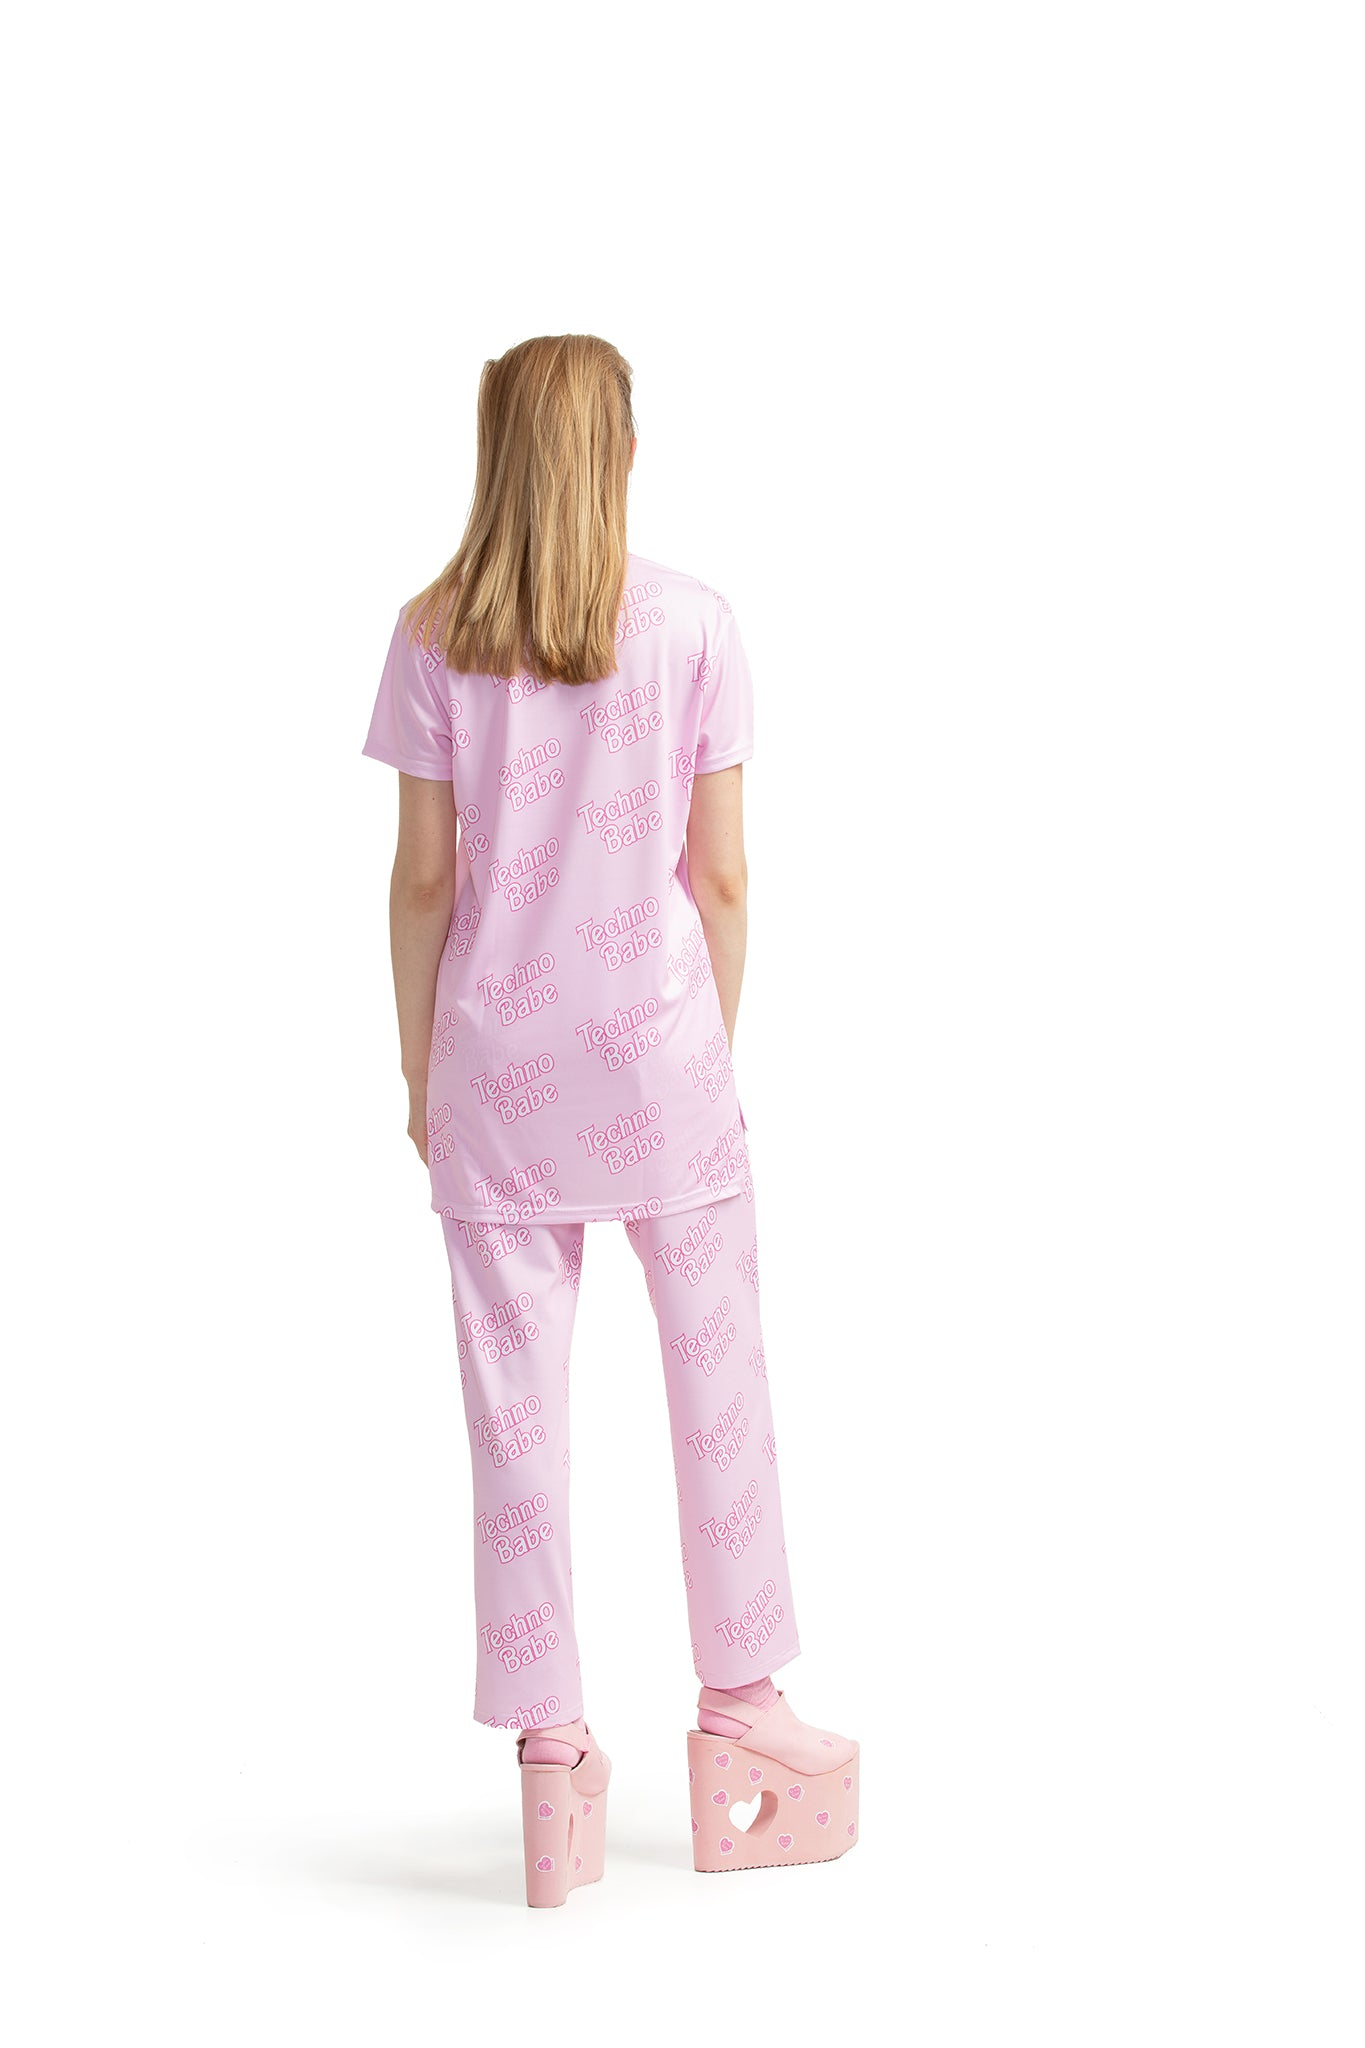 Techno Babe [Pink] - Ankle-length trousers